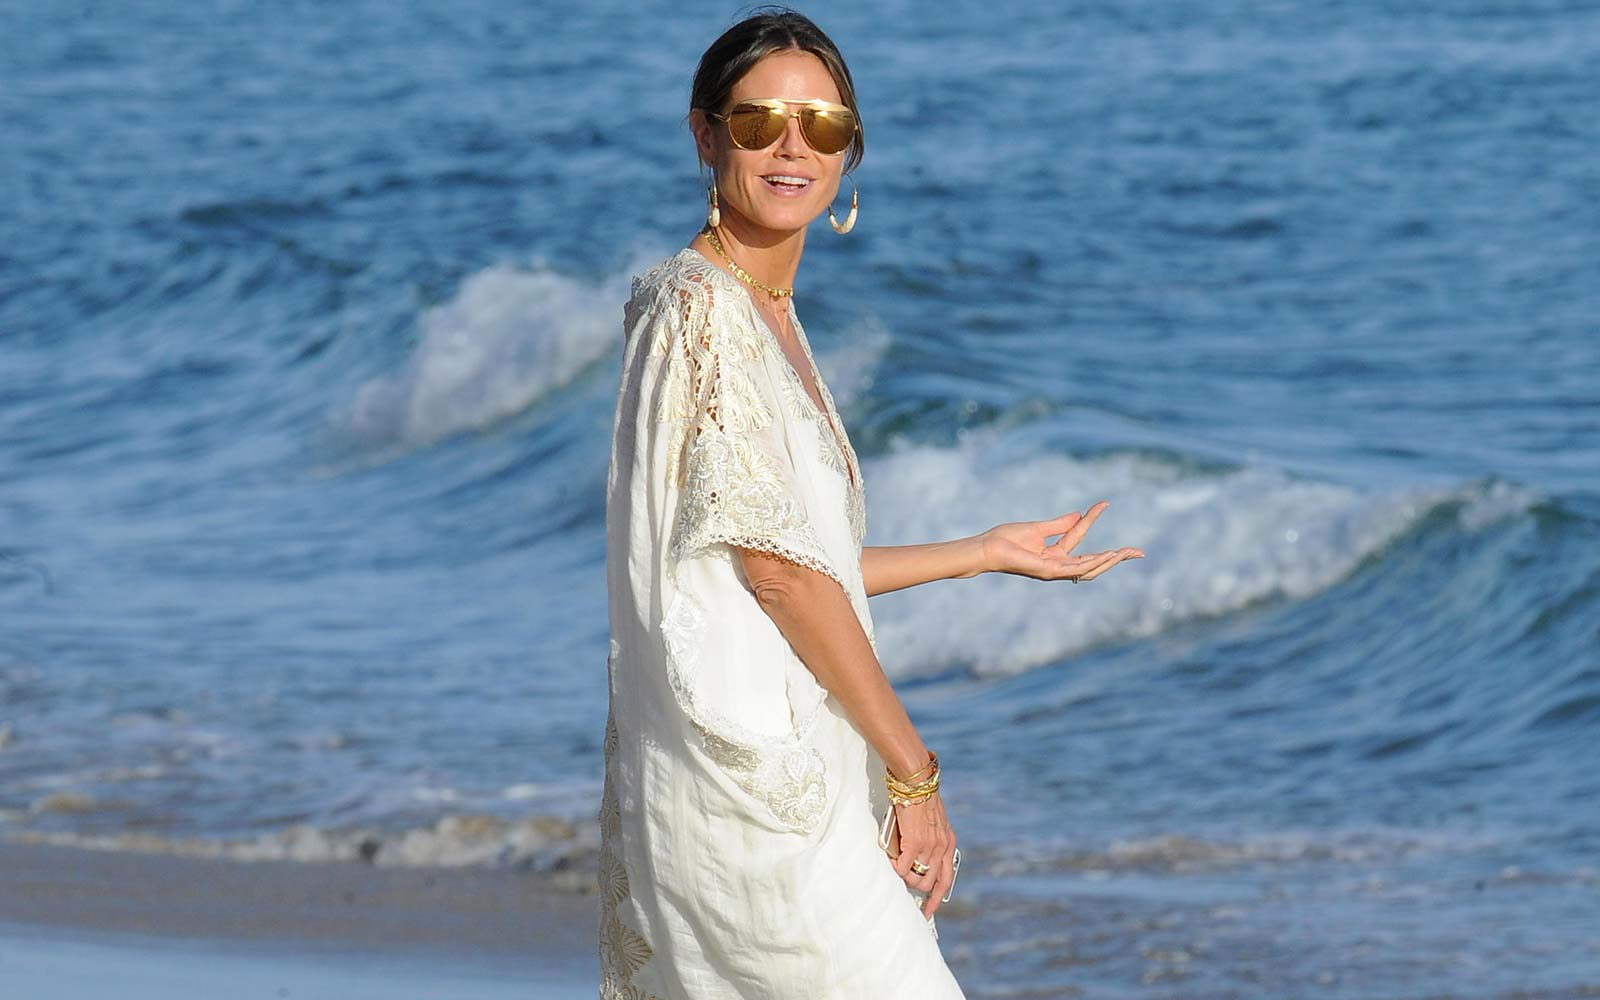 Heidi Klum's Gorgeous Caribbean Vacation Photos Will Convince You to Book a Trip